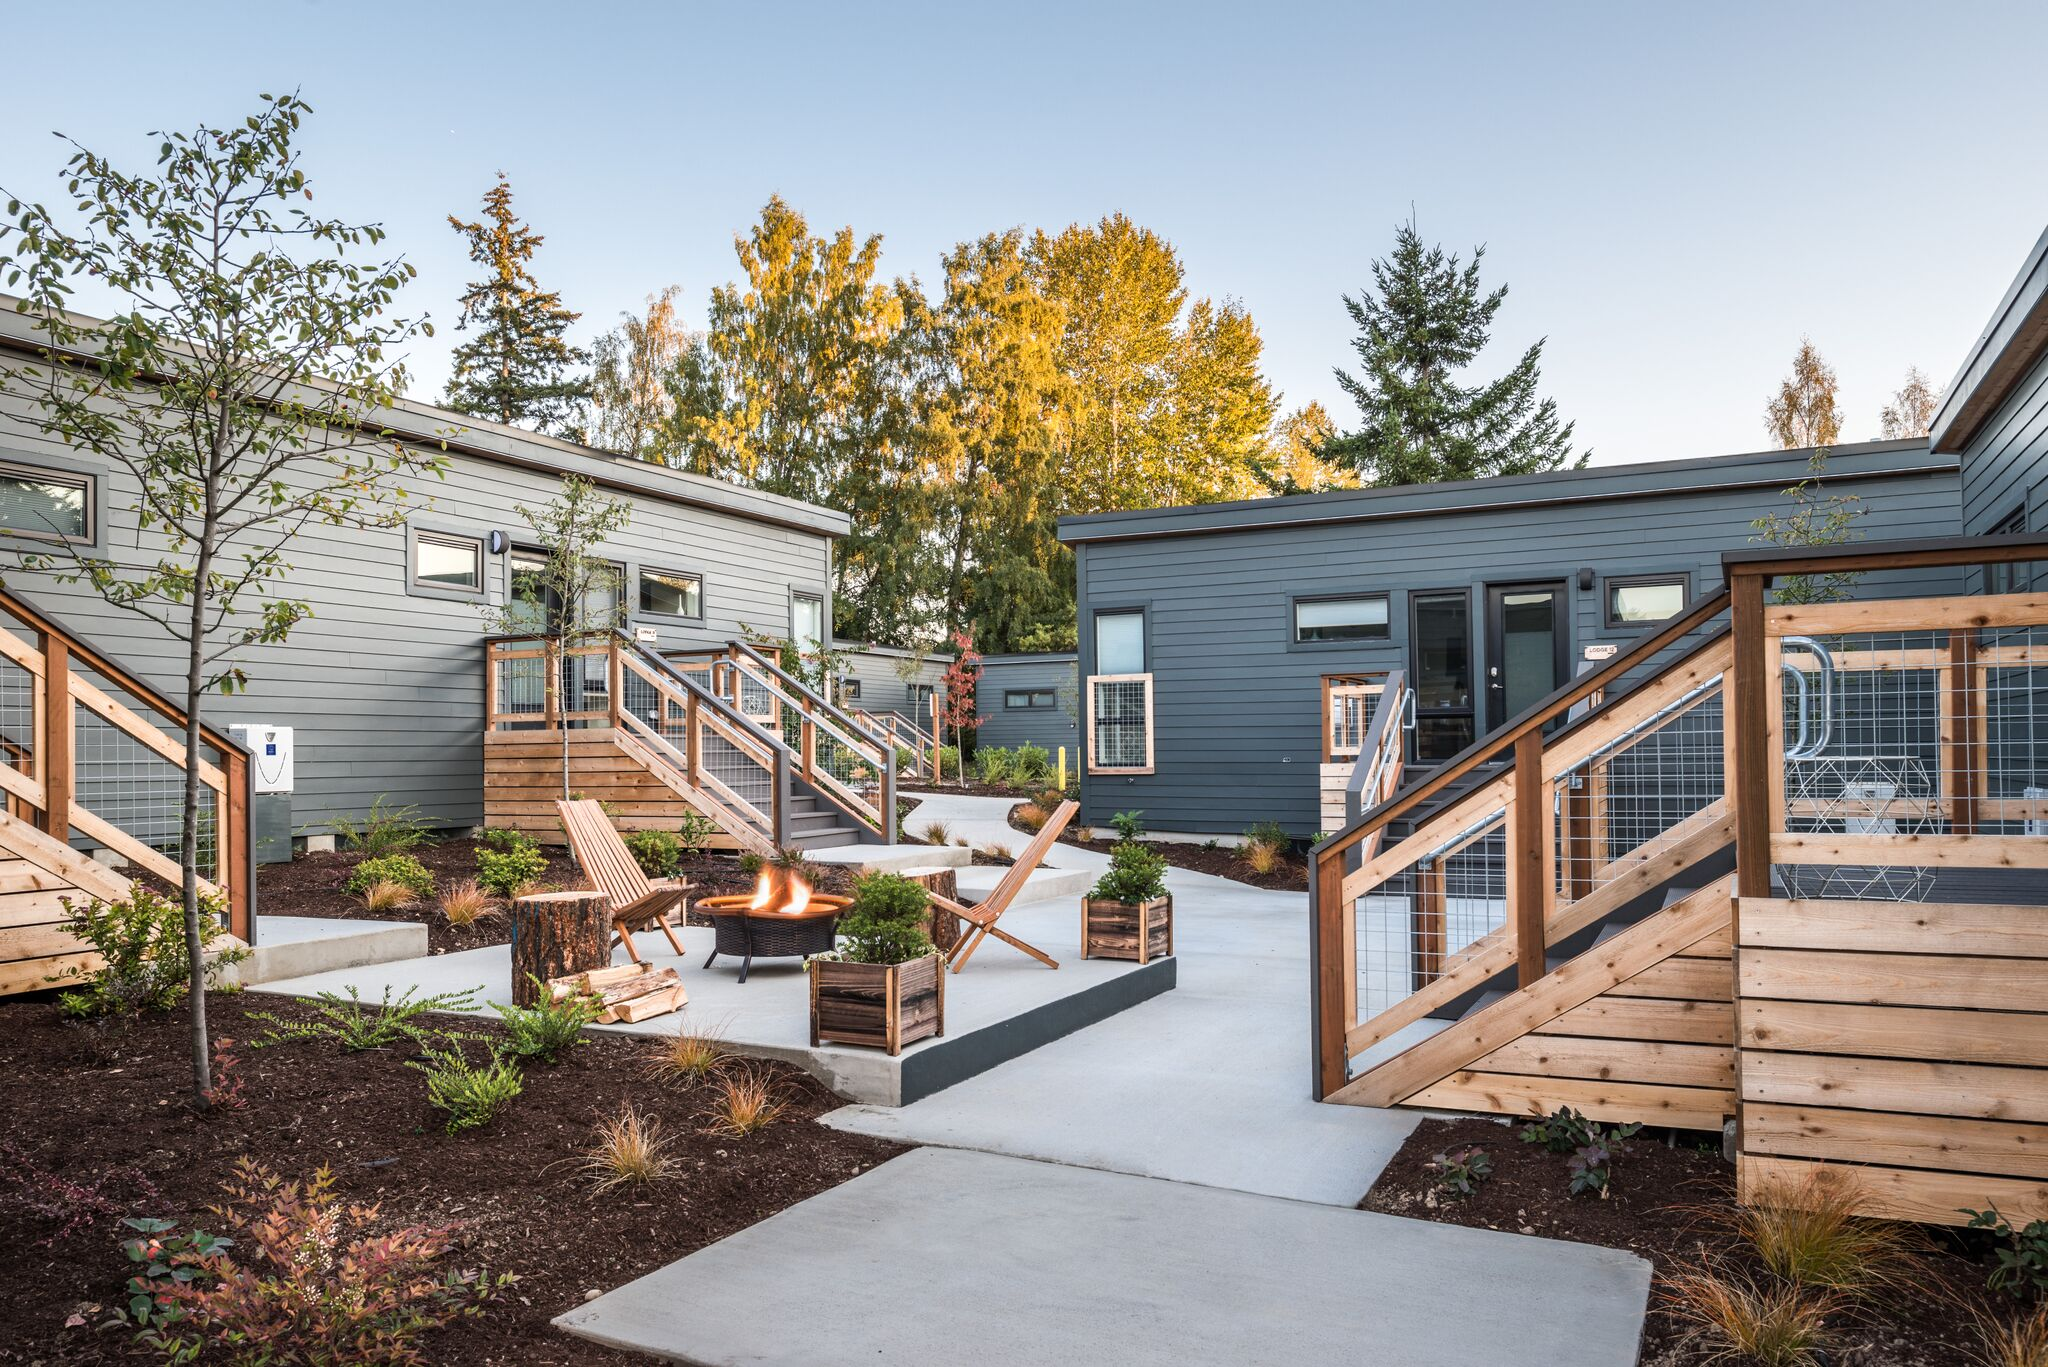 lodges_on_vashon-198_preview.jpg